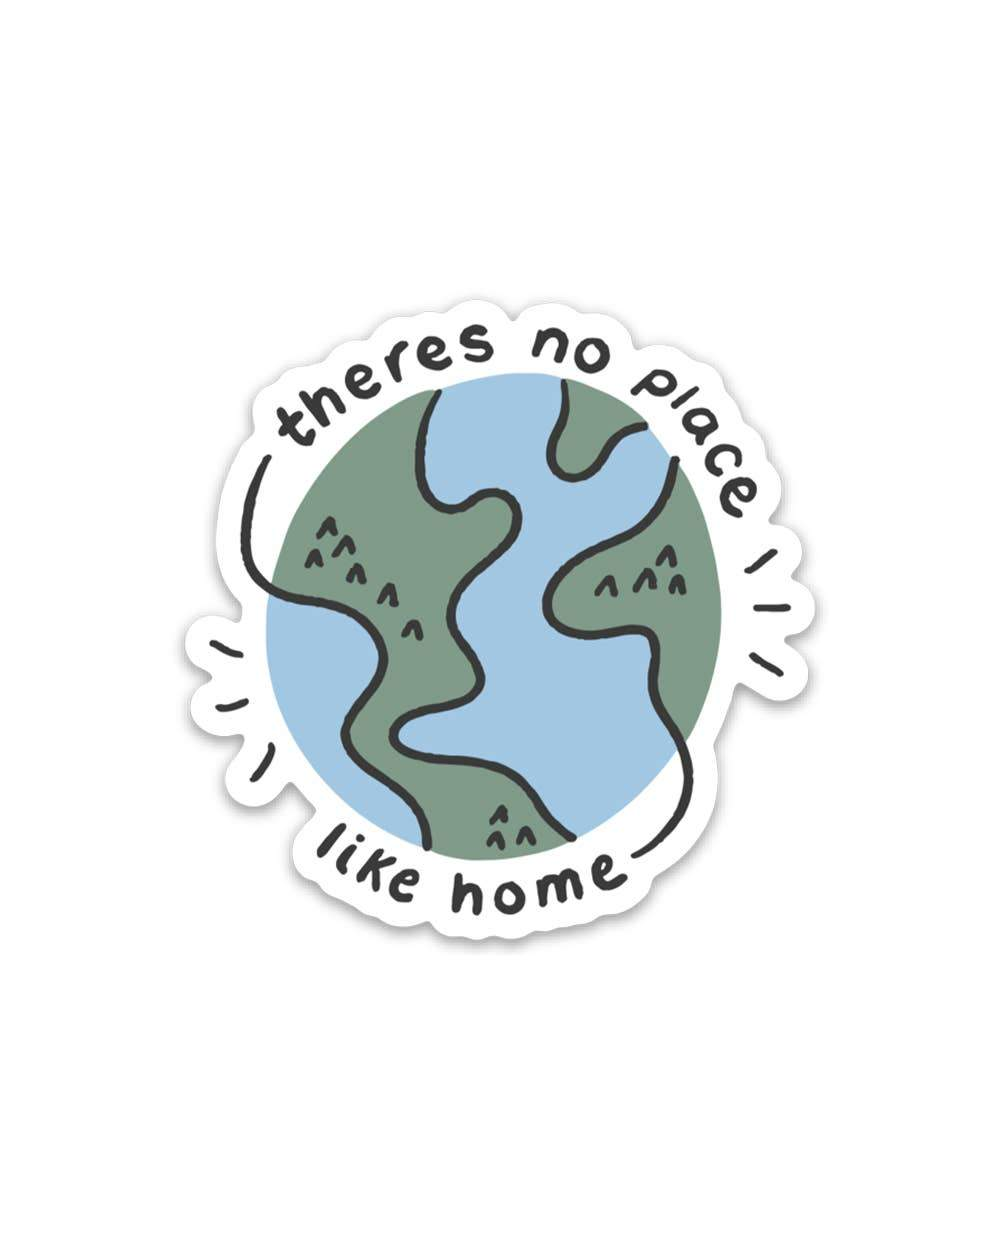 No Place Like Home | Sticker - for sale by Succy Crafts